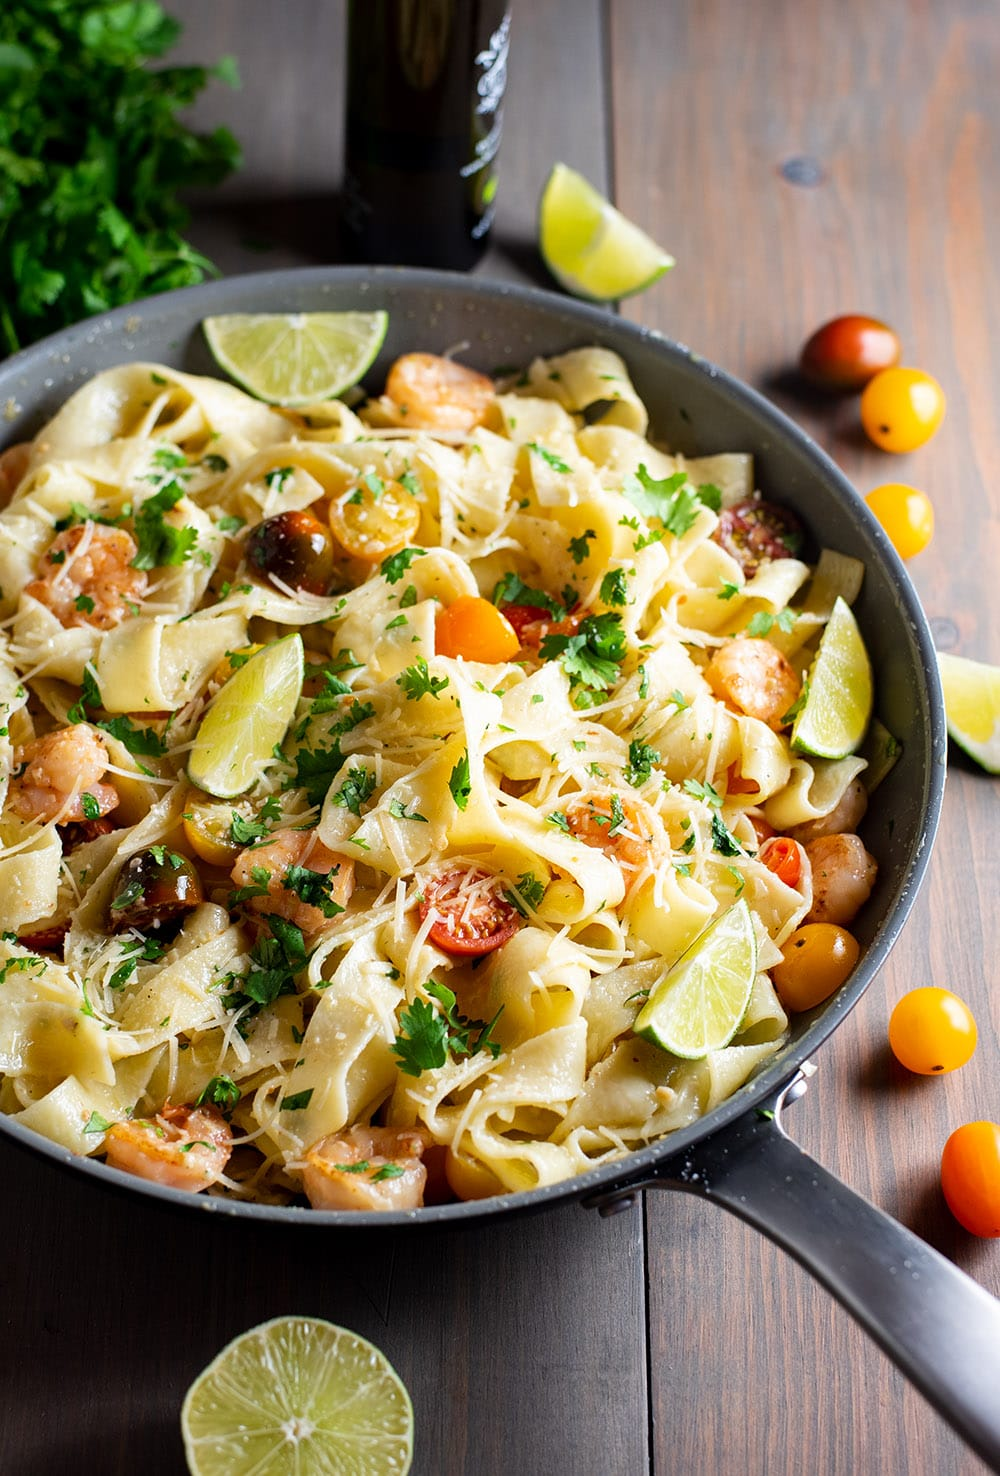 Pappardelle Pasta with Creamy Truffle Oil and Shrimp Recipe